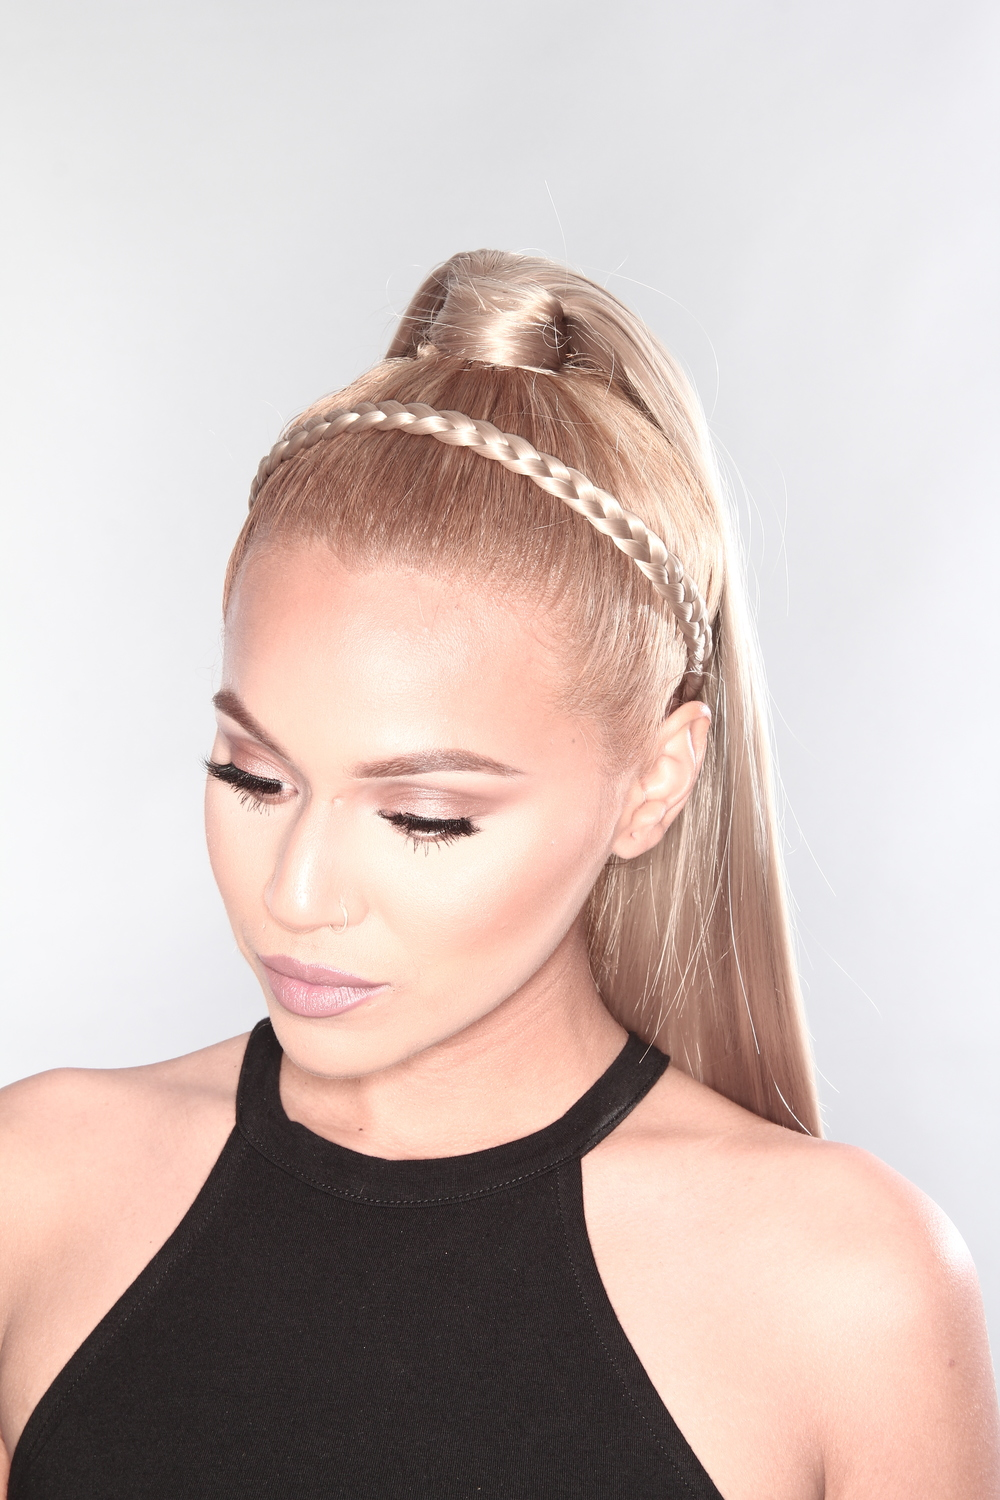 @keybeauty wearing her BELLAMI Braided headband in #18 Dirty Blonde.